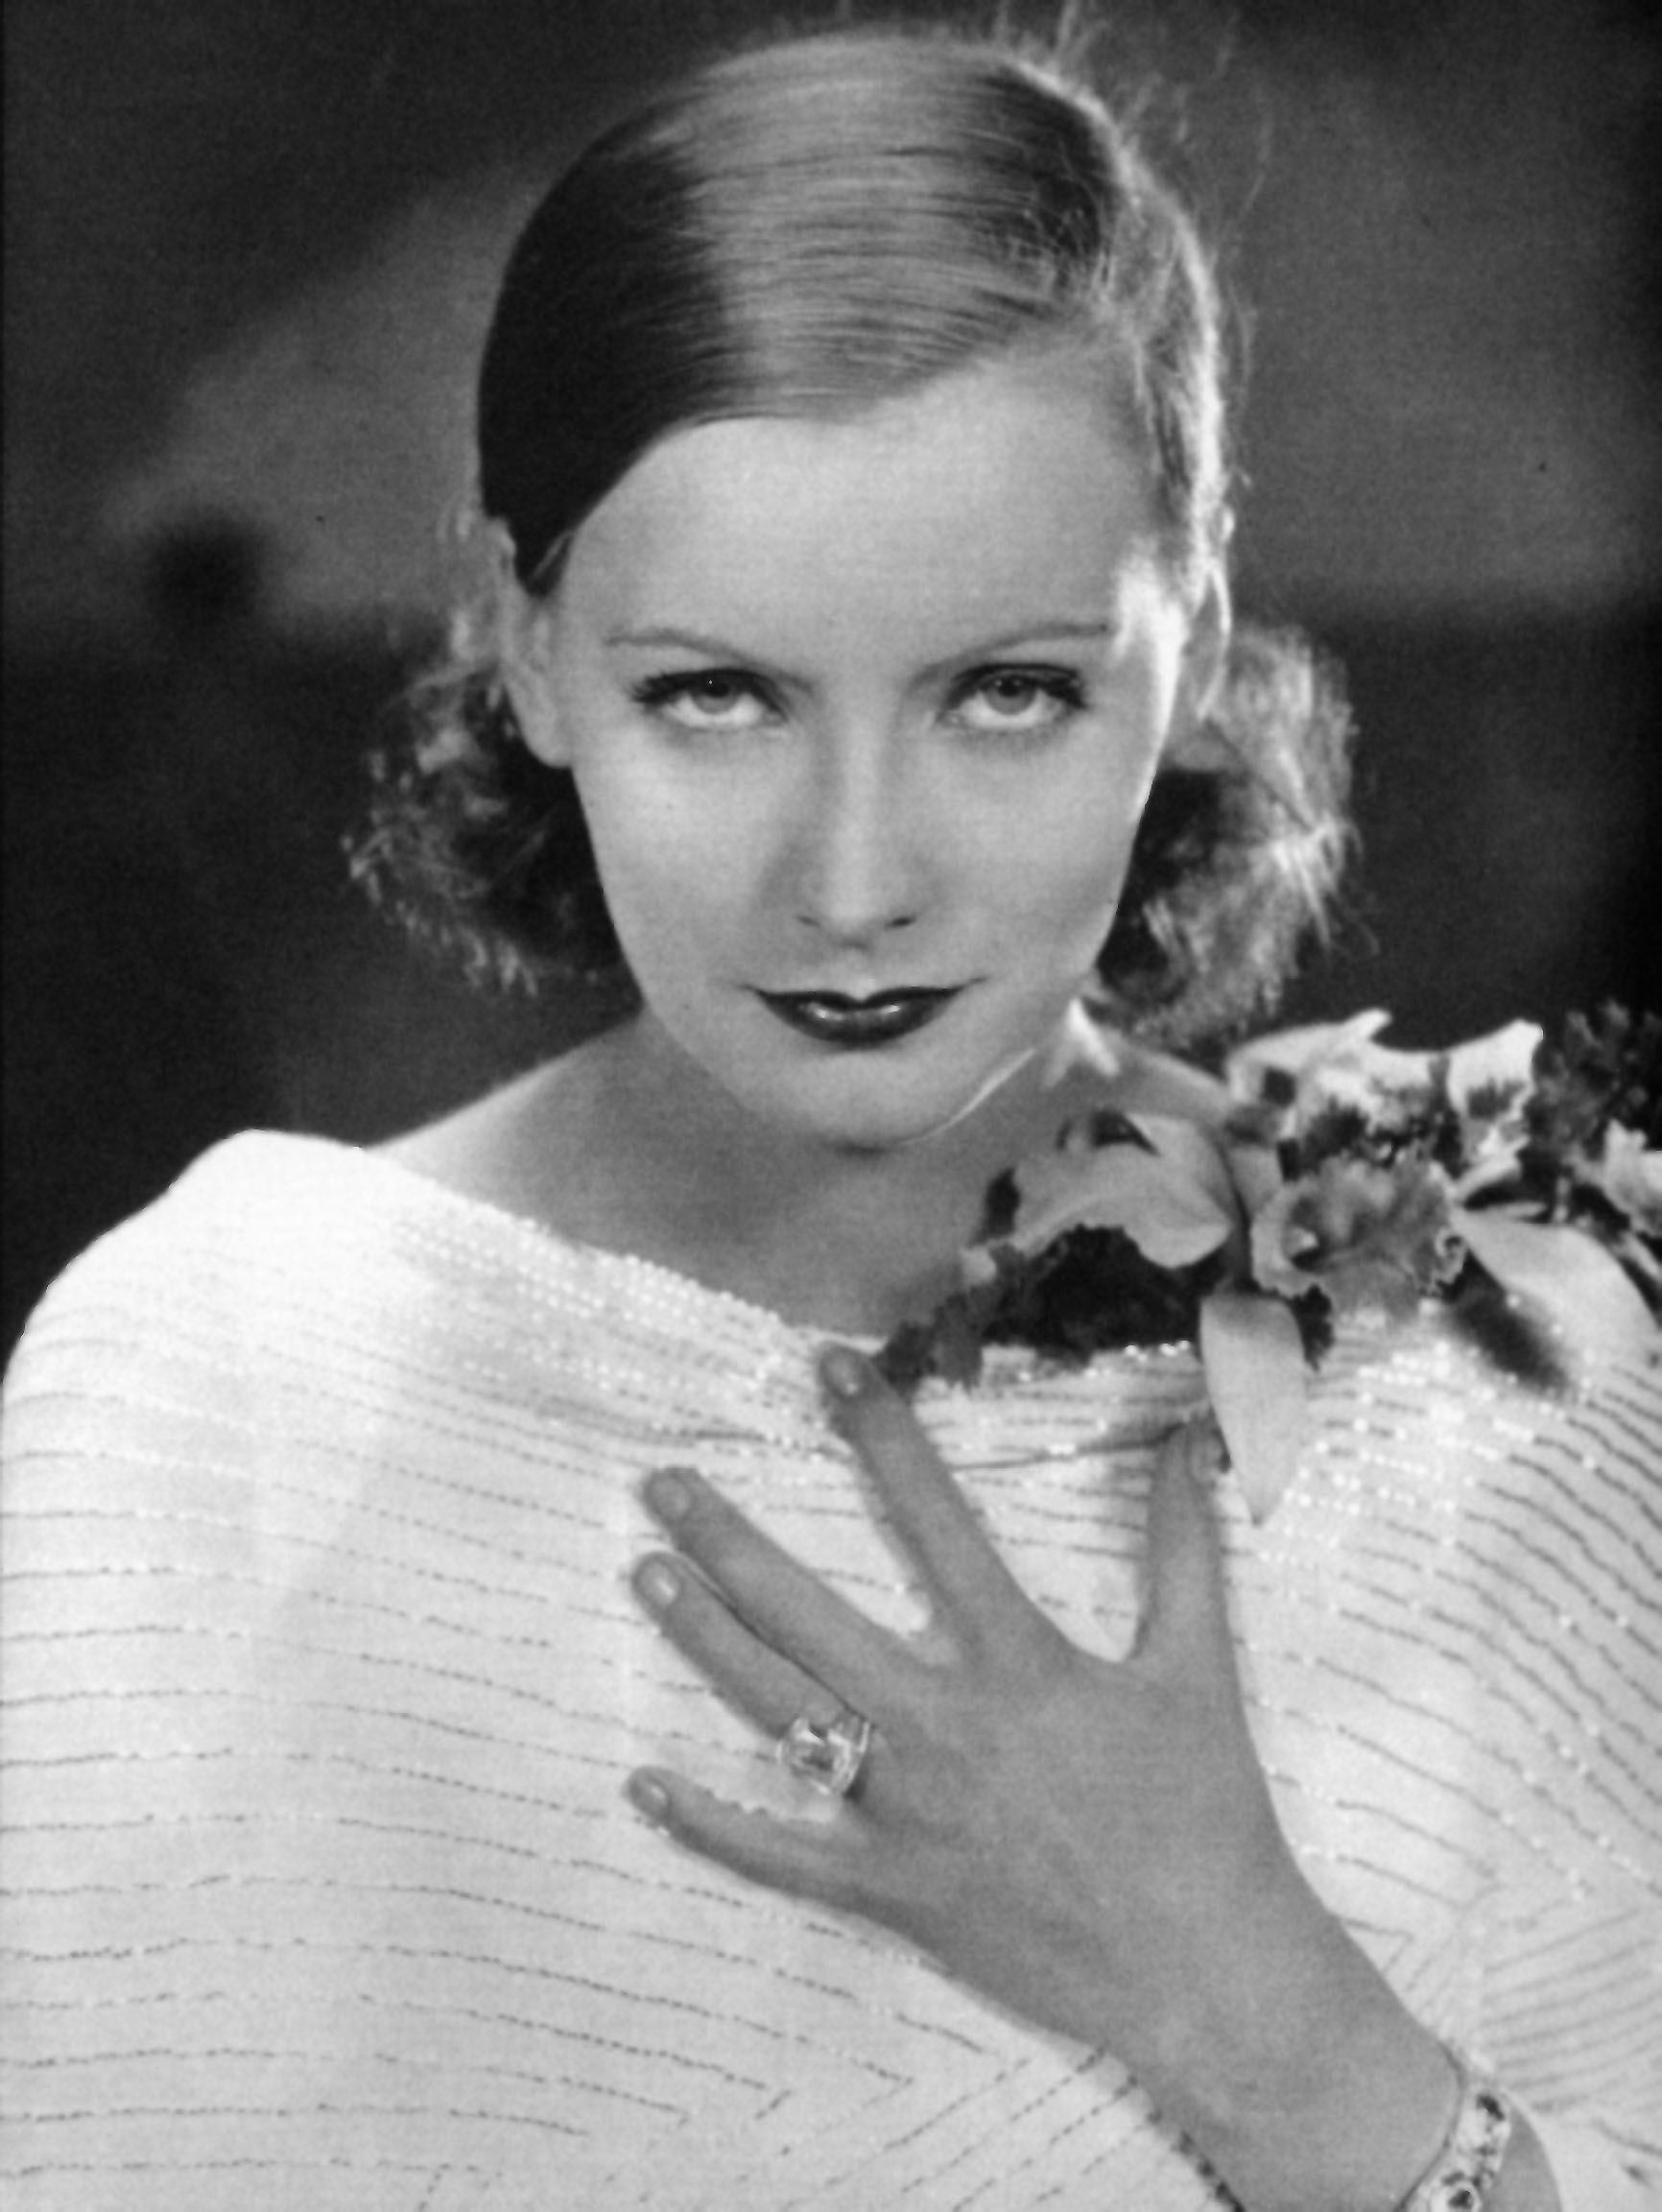 "Of course, Guilaroff styled MGM's biggest star, greta Garbo. I his memoir, ""Crowning Glories, Guilaroff claimed to have been Garbo and Ava Gardner's lover. Not bad for the child of impoverished Jewish immigrants from Russia."